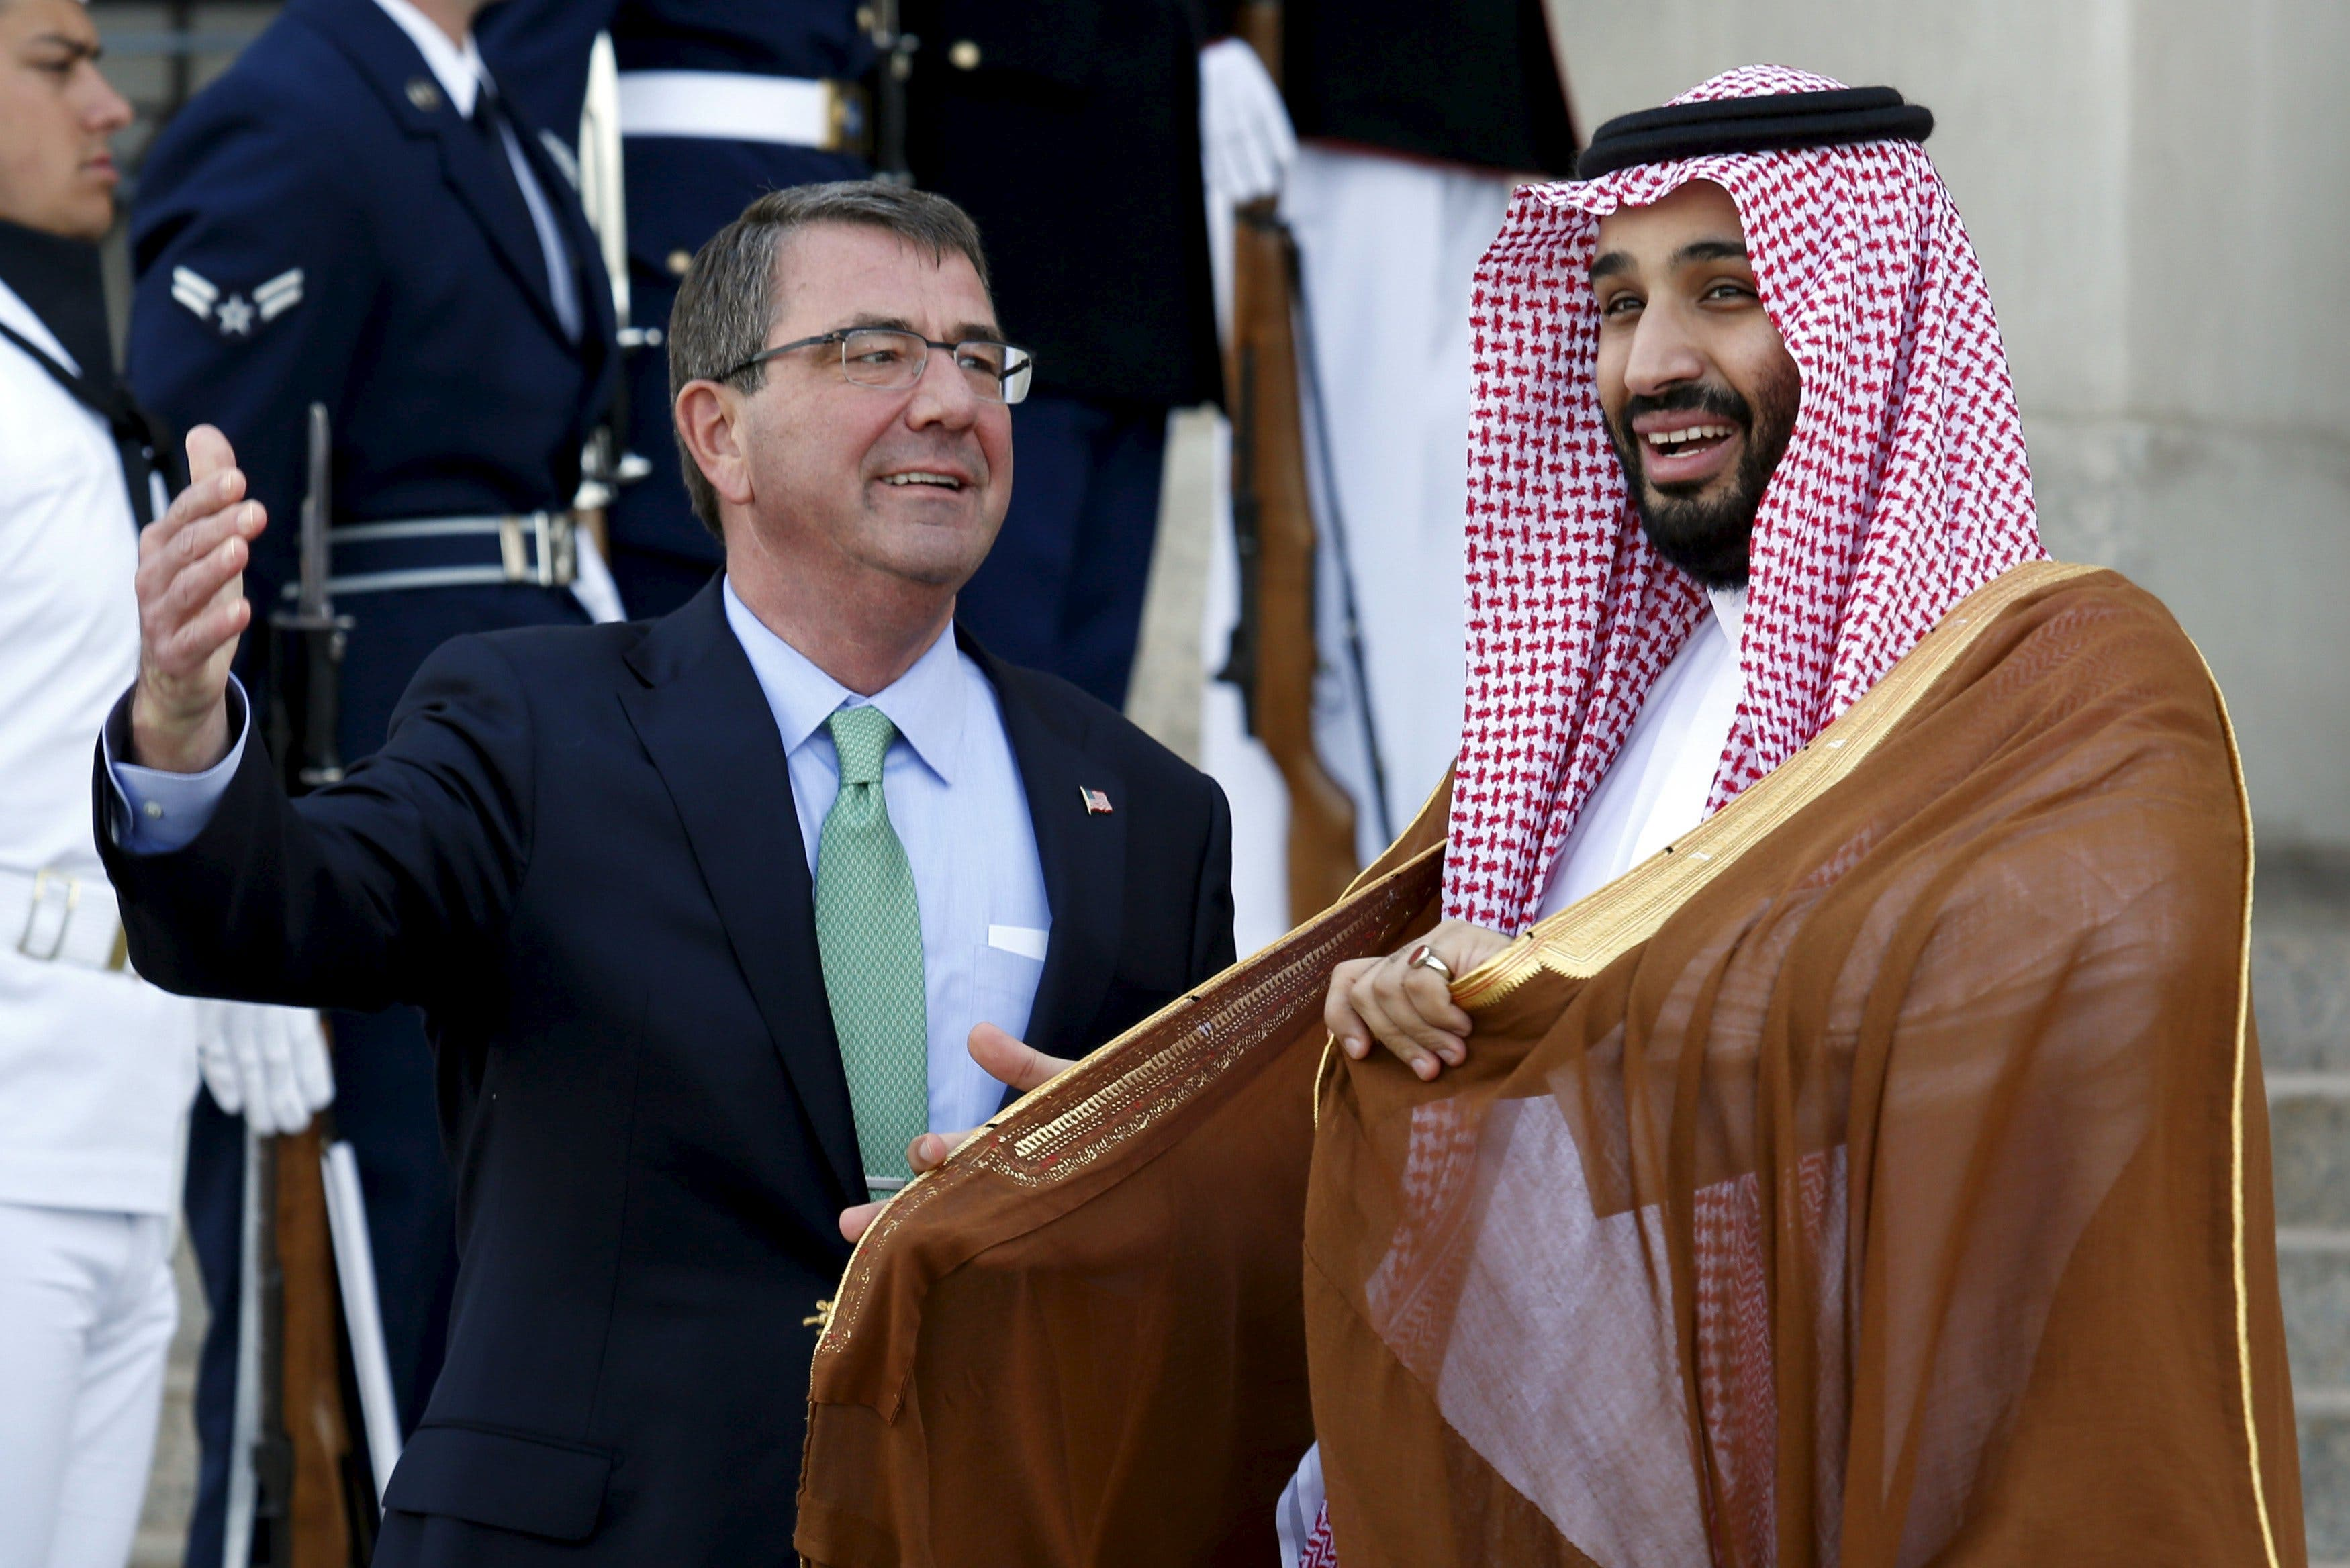 U.S. Defense Secretary Ash Carter (L) welcomes Mohammed bin Salman, deputy crown prince and defense minister of Saudi Arabia, at the Pentagon in Washington May 13, 2015. (Reuters)